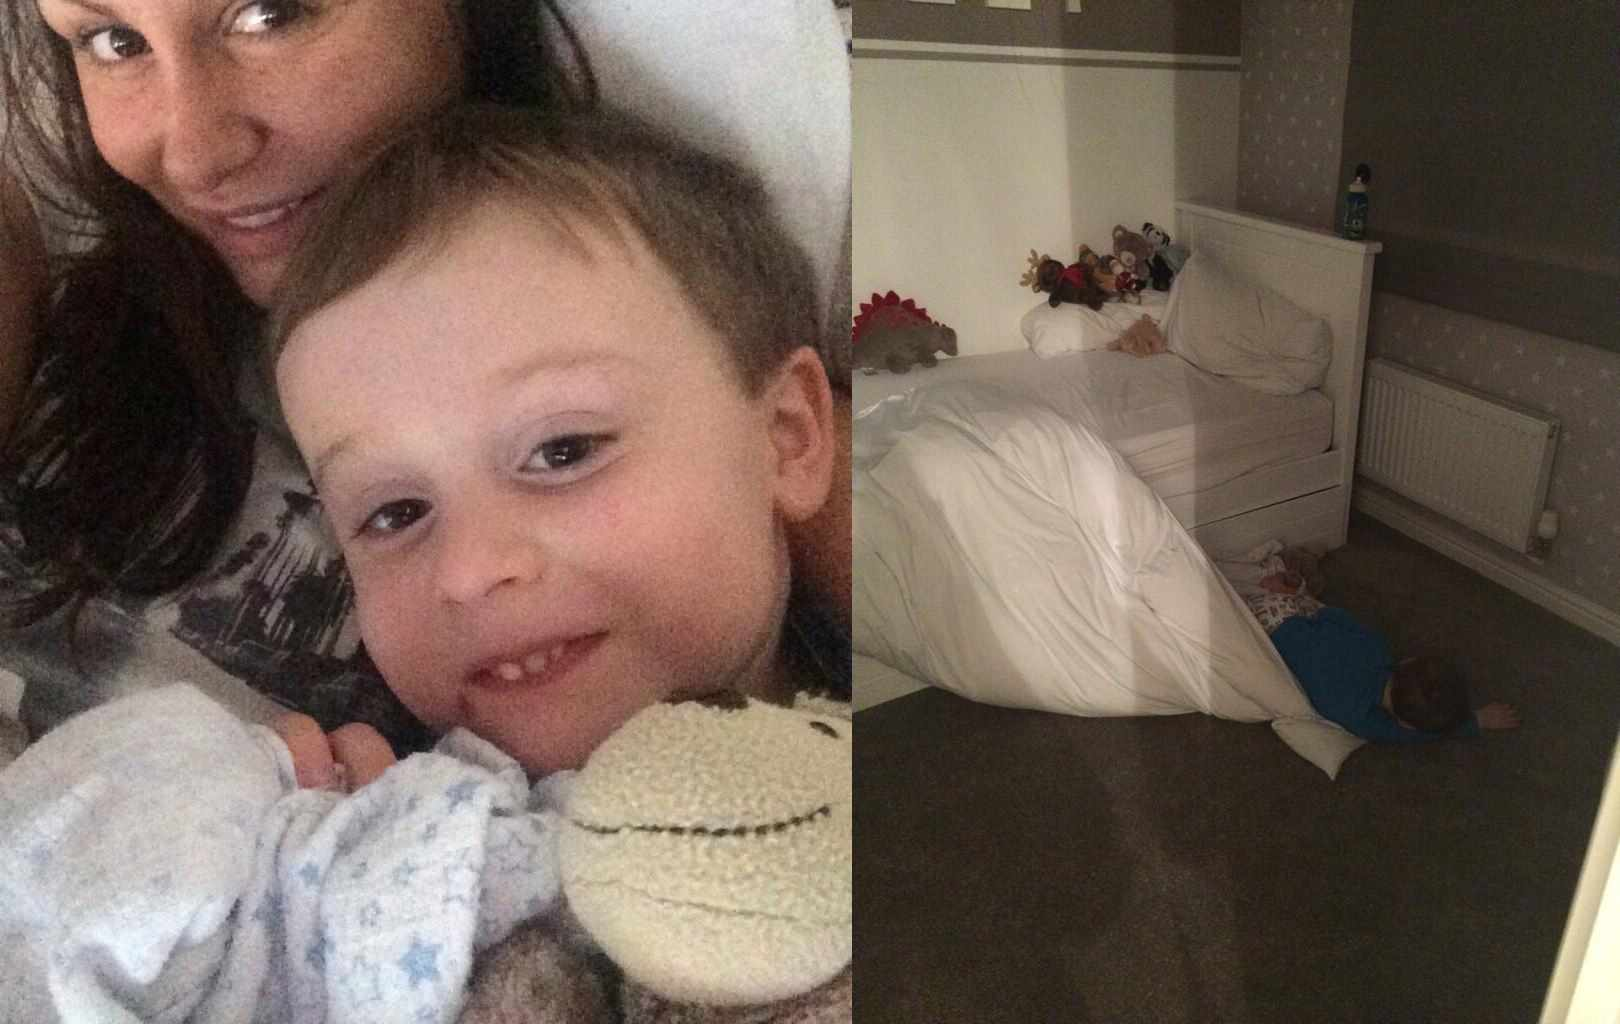 chanelle-hayes-faces-backlash-from-superior-mums-after-posting-pic-of-son-fallen-out-of-bed_53101